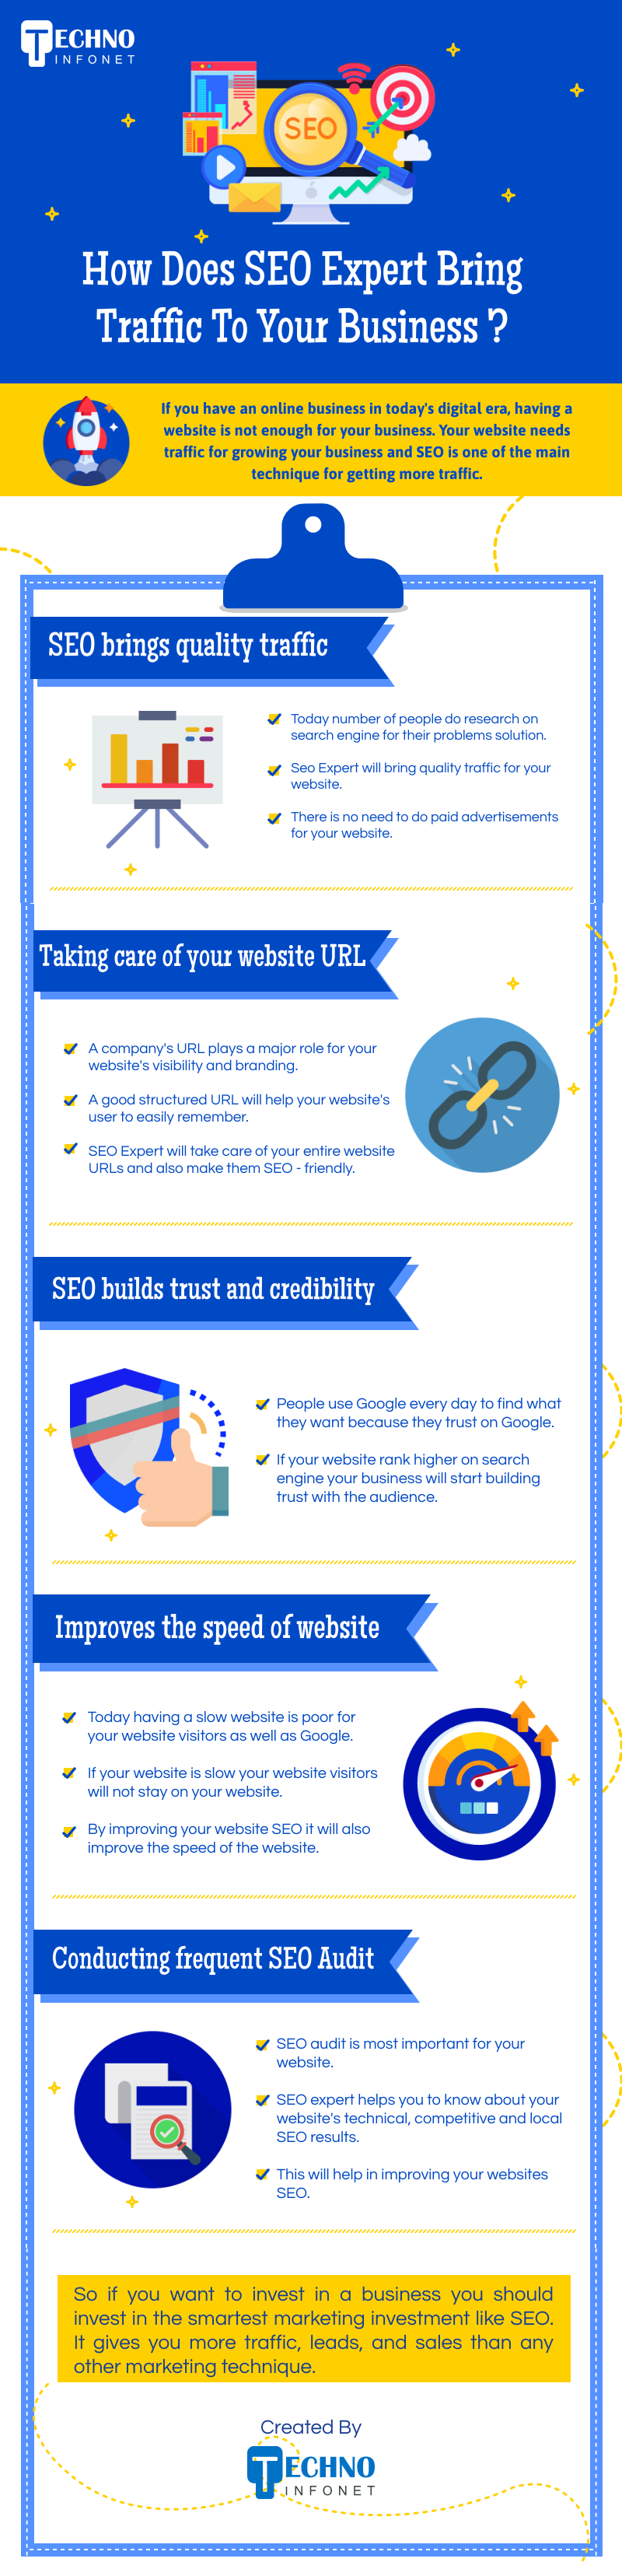 How does SEO Expert bring traffic to your business?